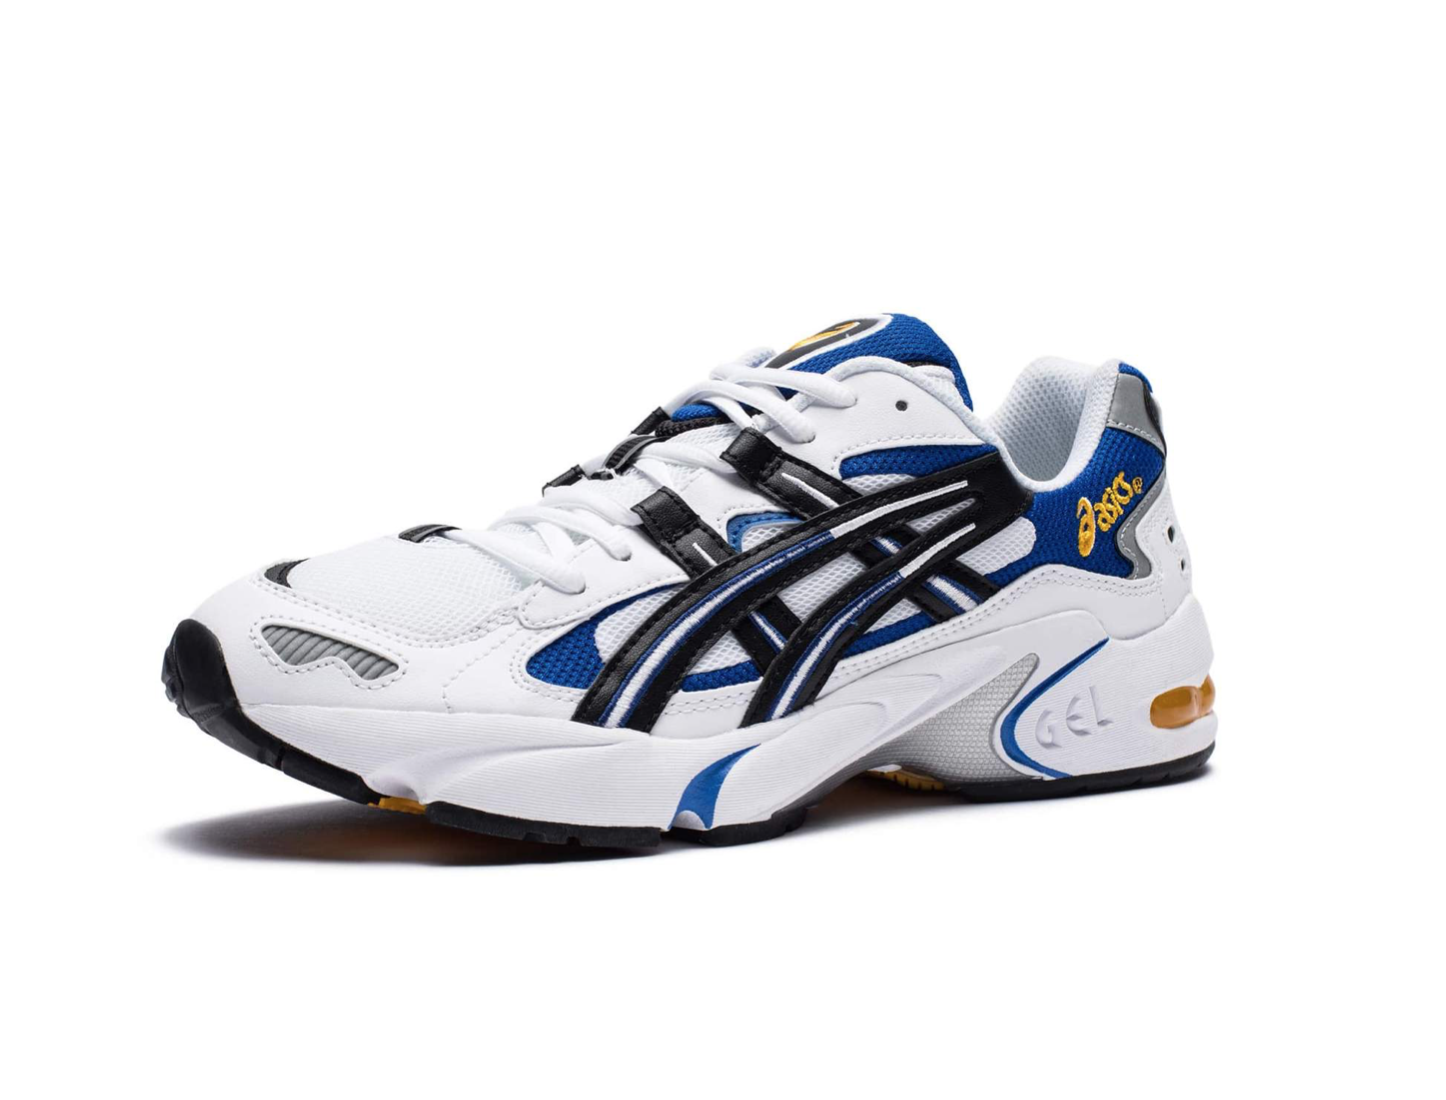 "Asics - GEL-KAYANO 5 OG / $120""Originally launched in 1999, the GEL-KAYANO® 5 model finally makes its return. The silhouette maintains the iconic original details and it's legendary comfort with an even lighter weight. The shoe features classic 90's aesthetic: a bulky silhouette, heavy use of overlays, aggressive tiger stripe branding and bold, directional tooling, including the original trusstic technology."""